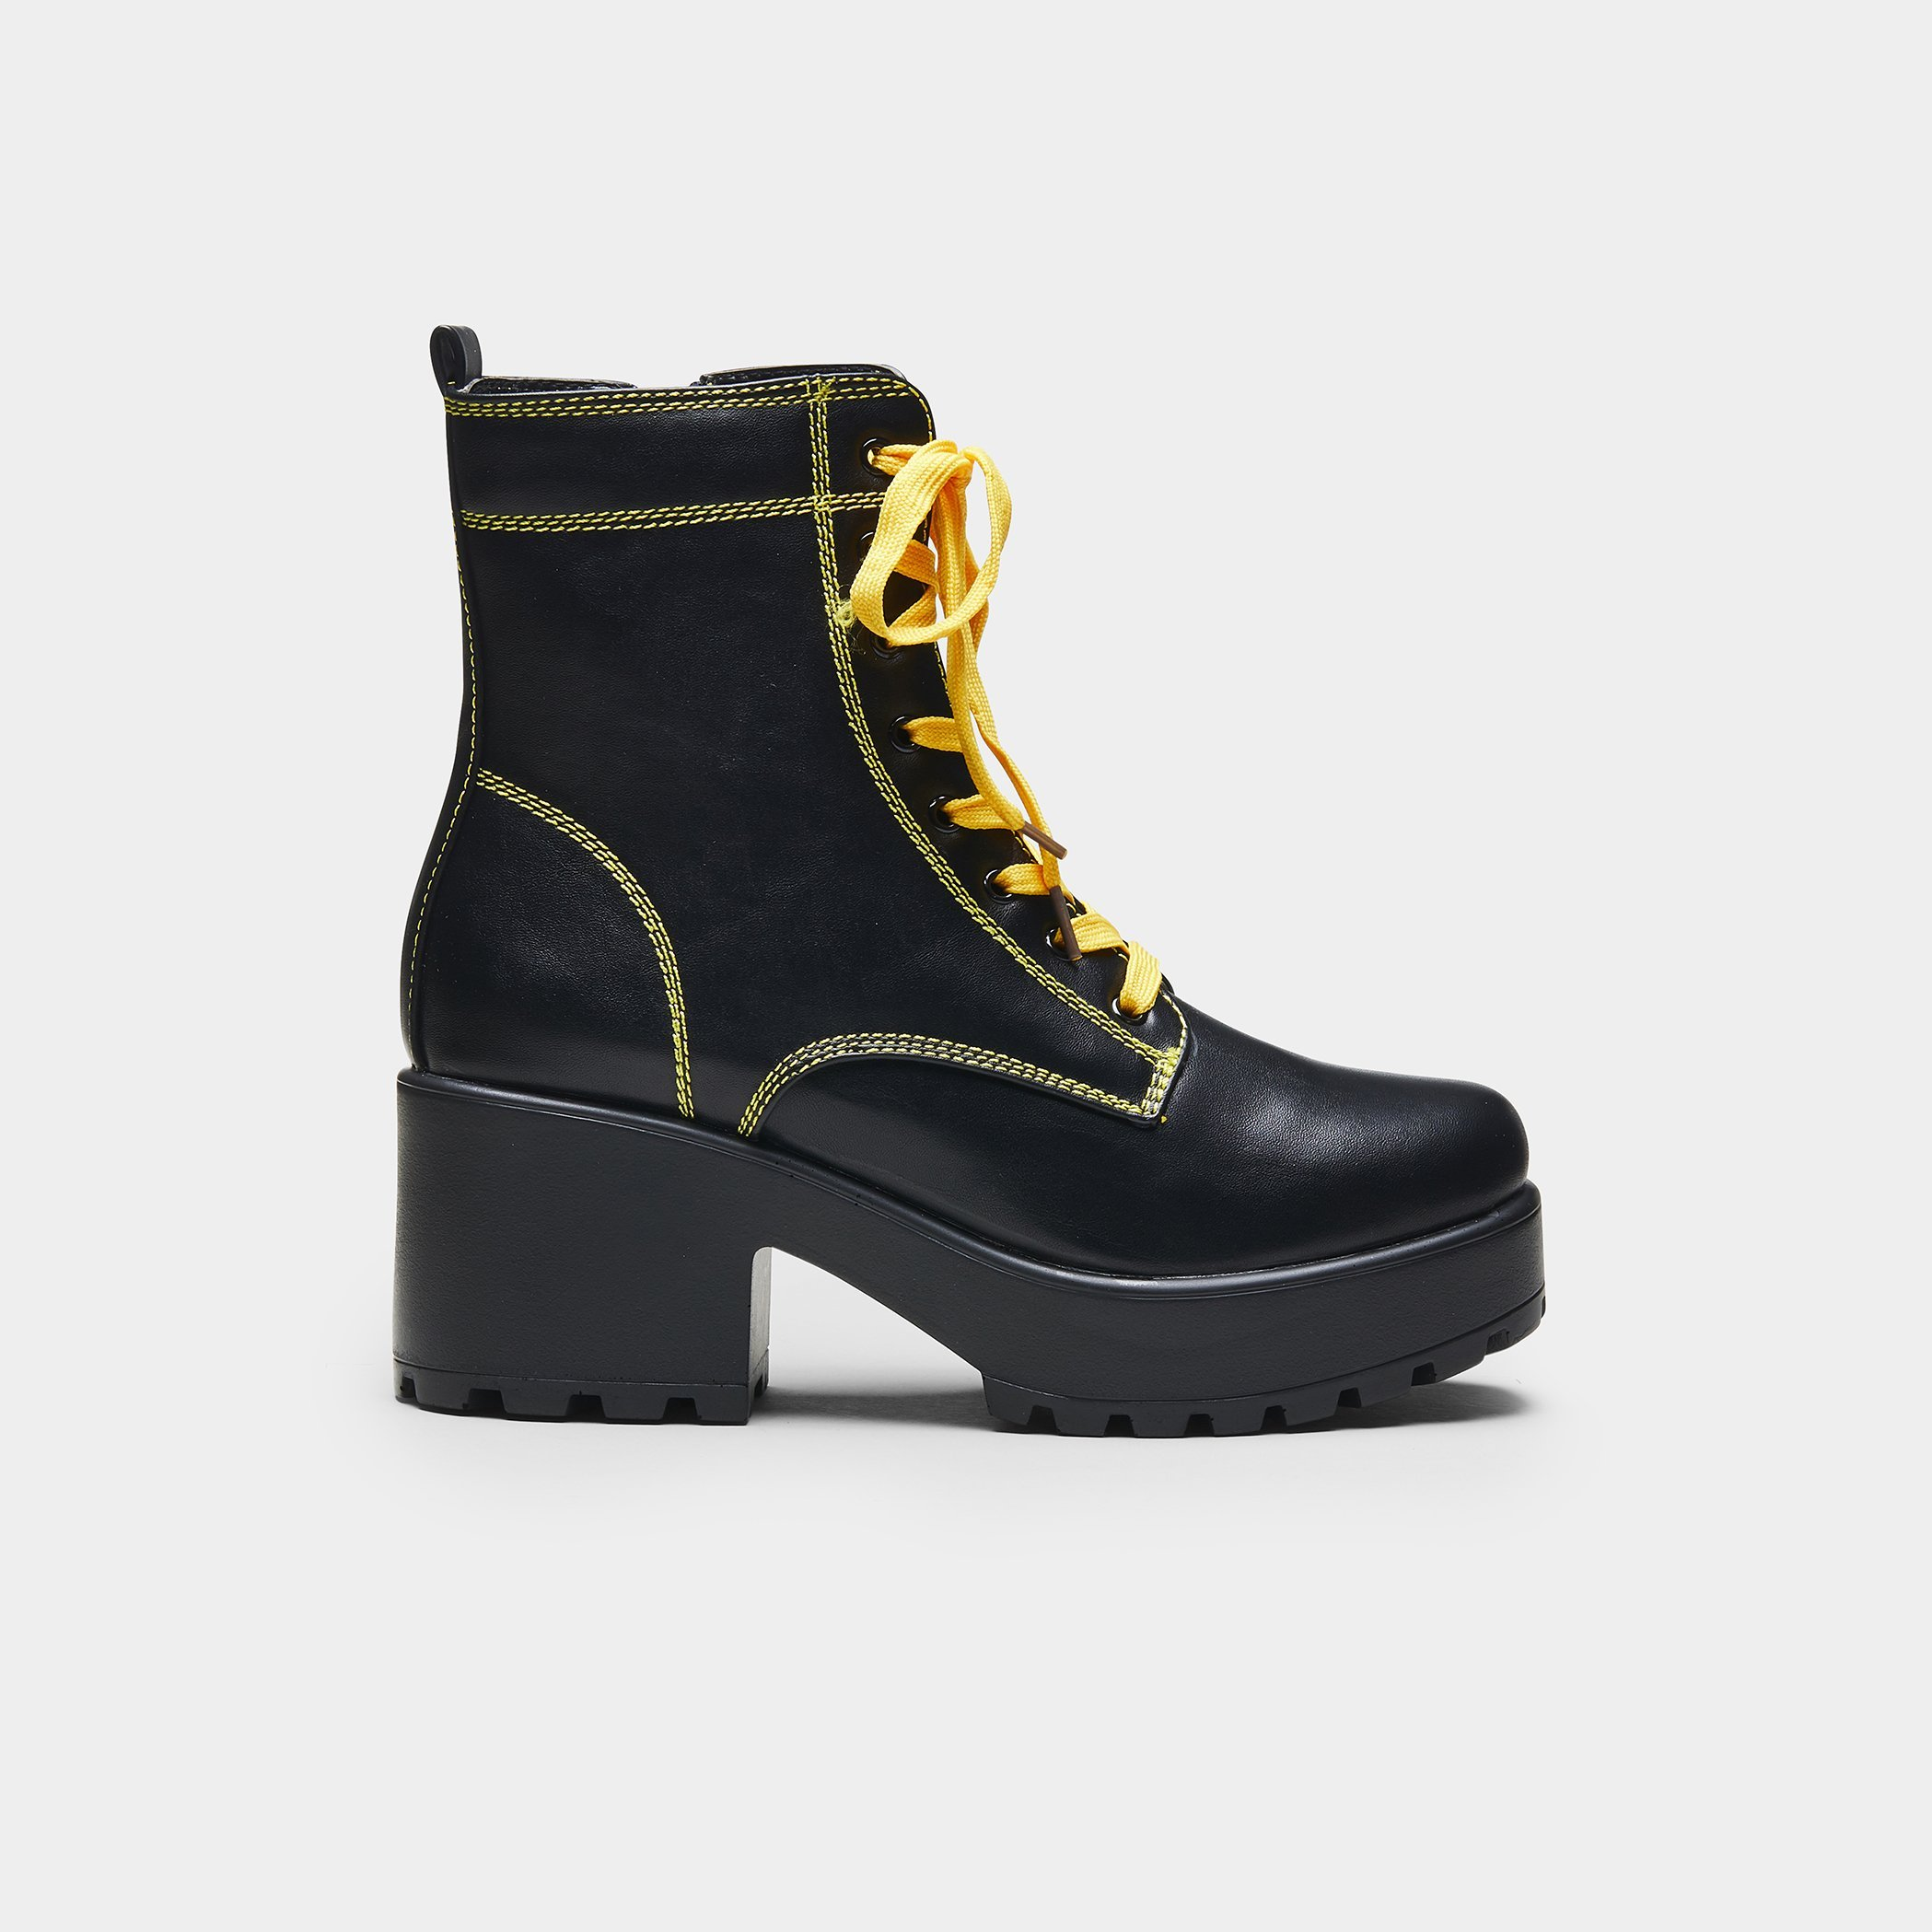 Black Chunky Platform Biker Boots with Yellow laces and Stitching